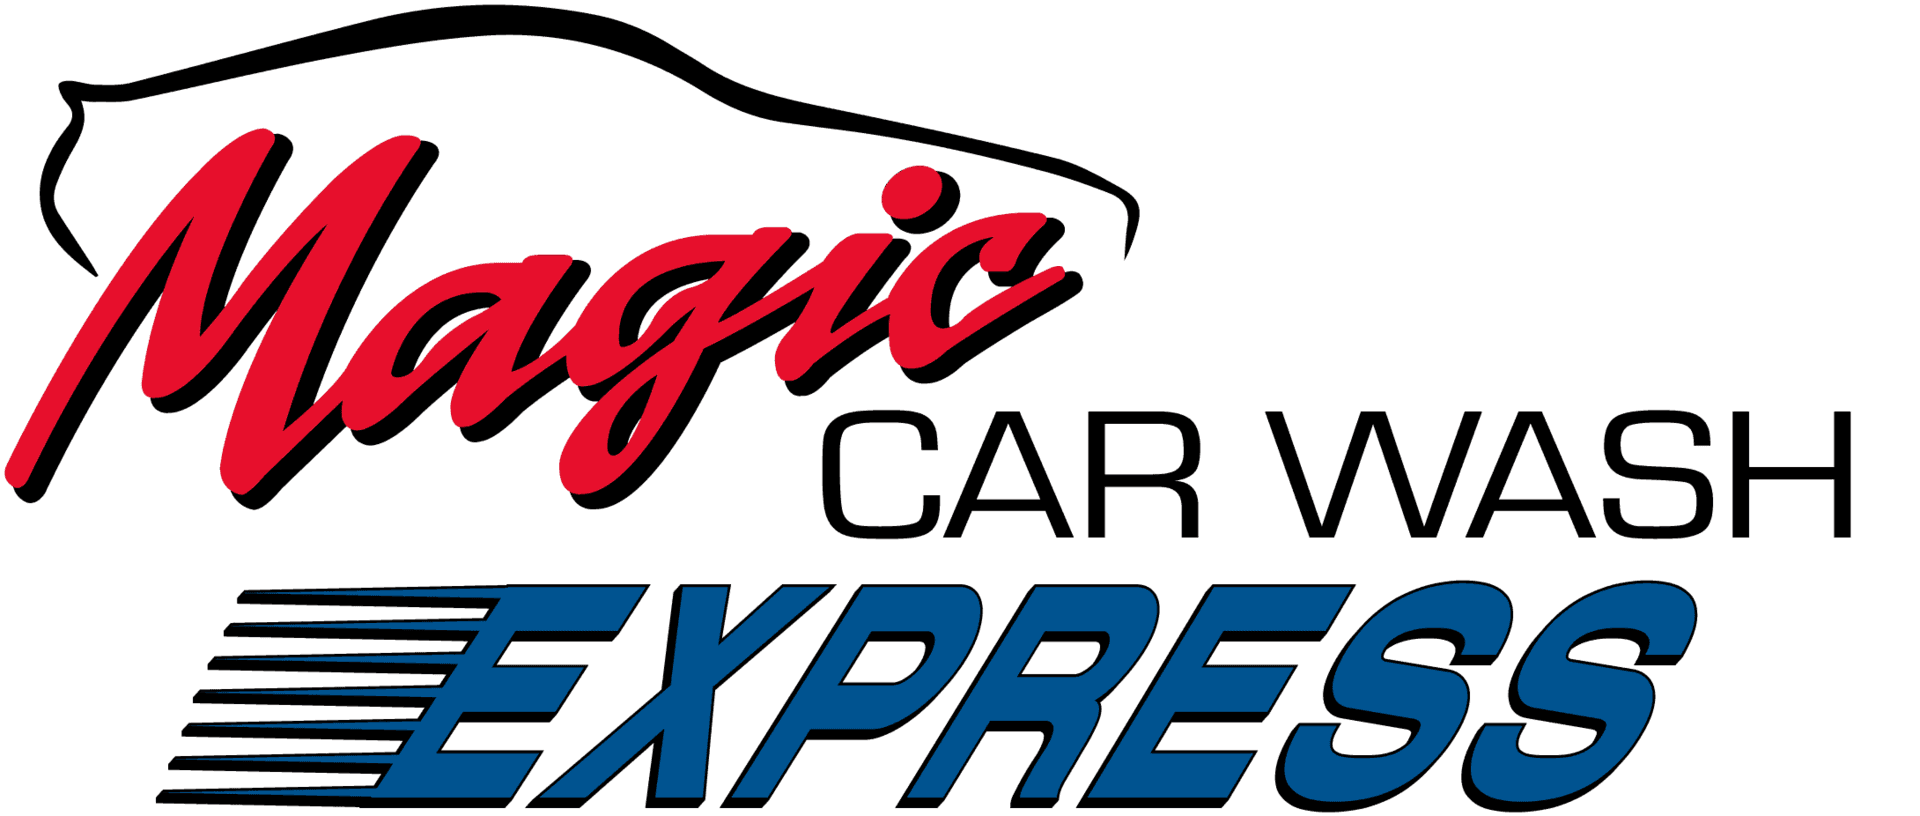 Magic Car Wash Express  Logo